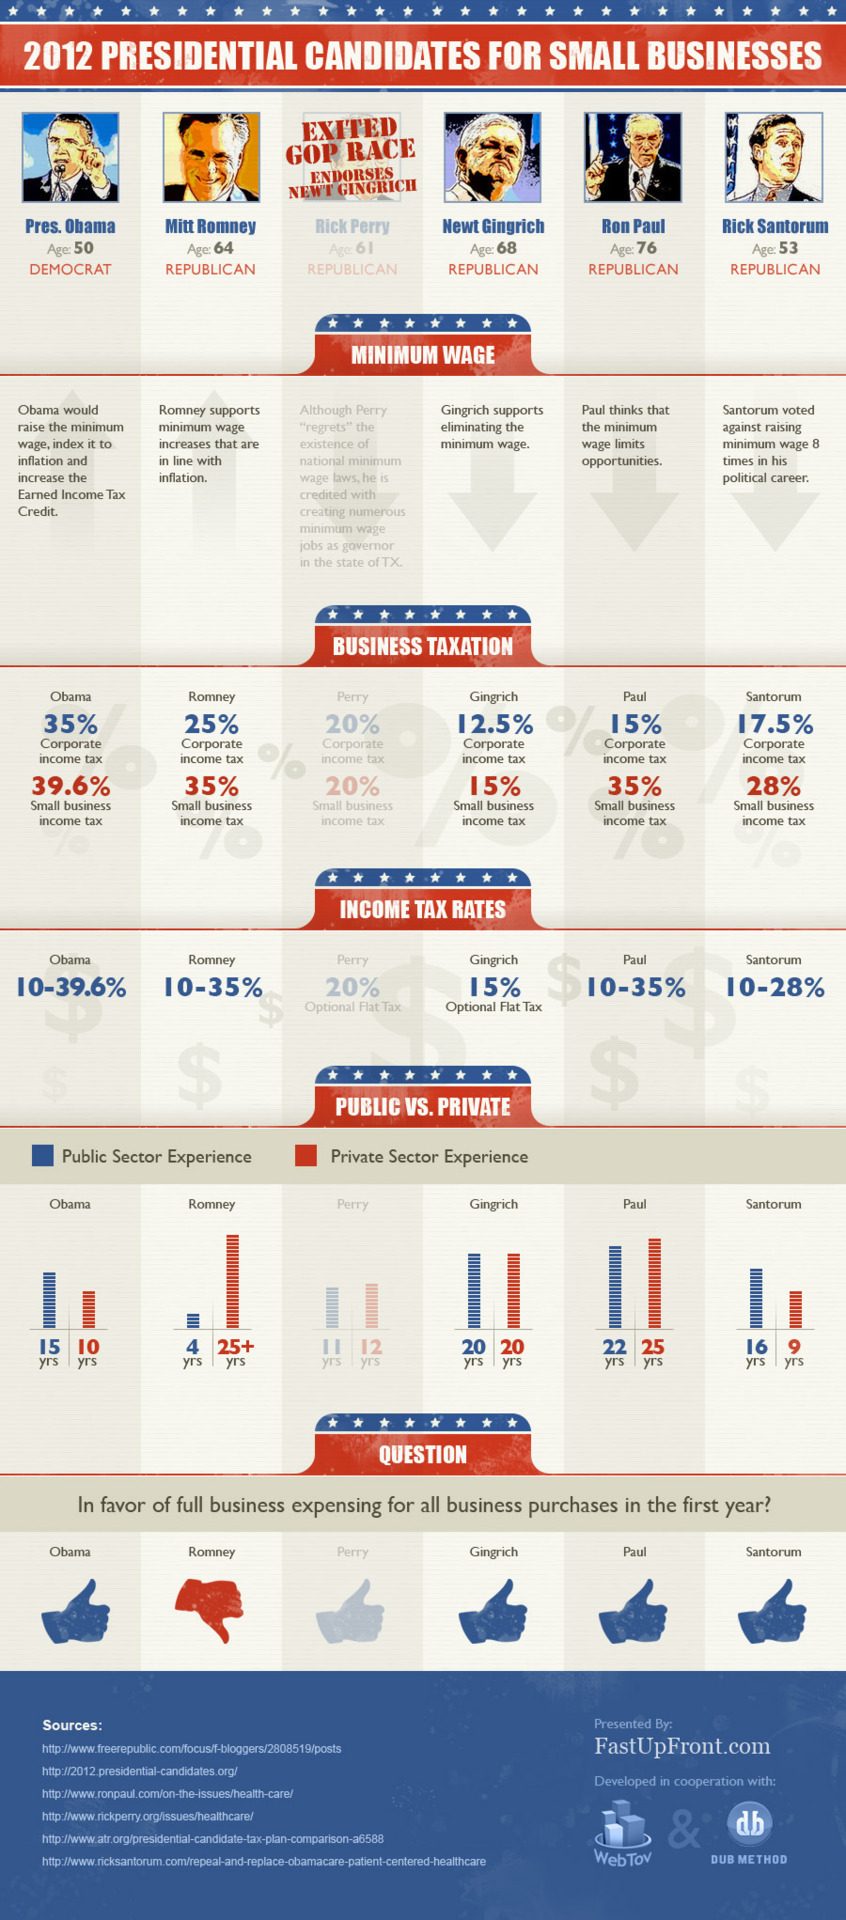 2012 Presidential candidates in relation to small business